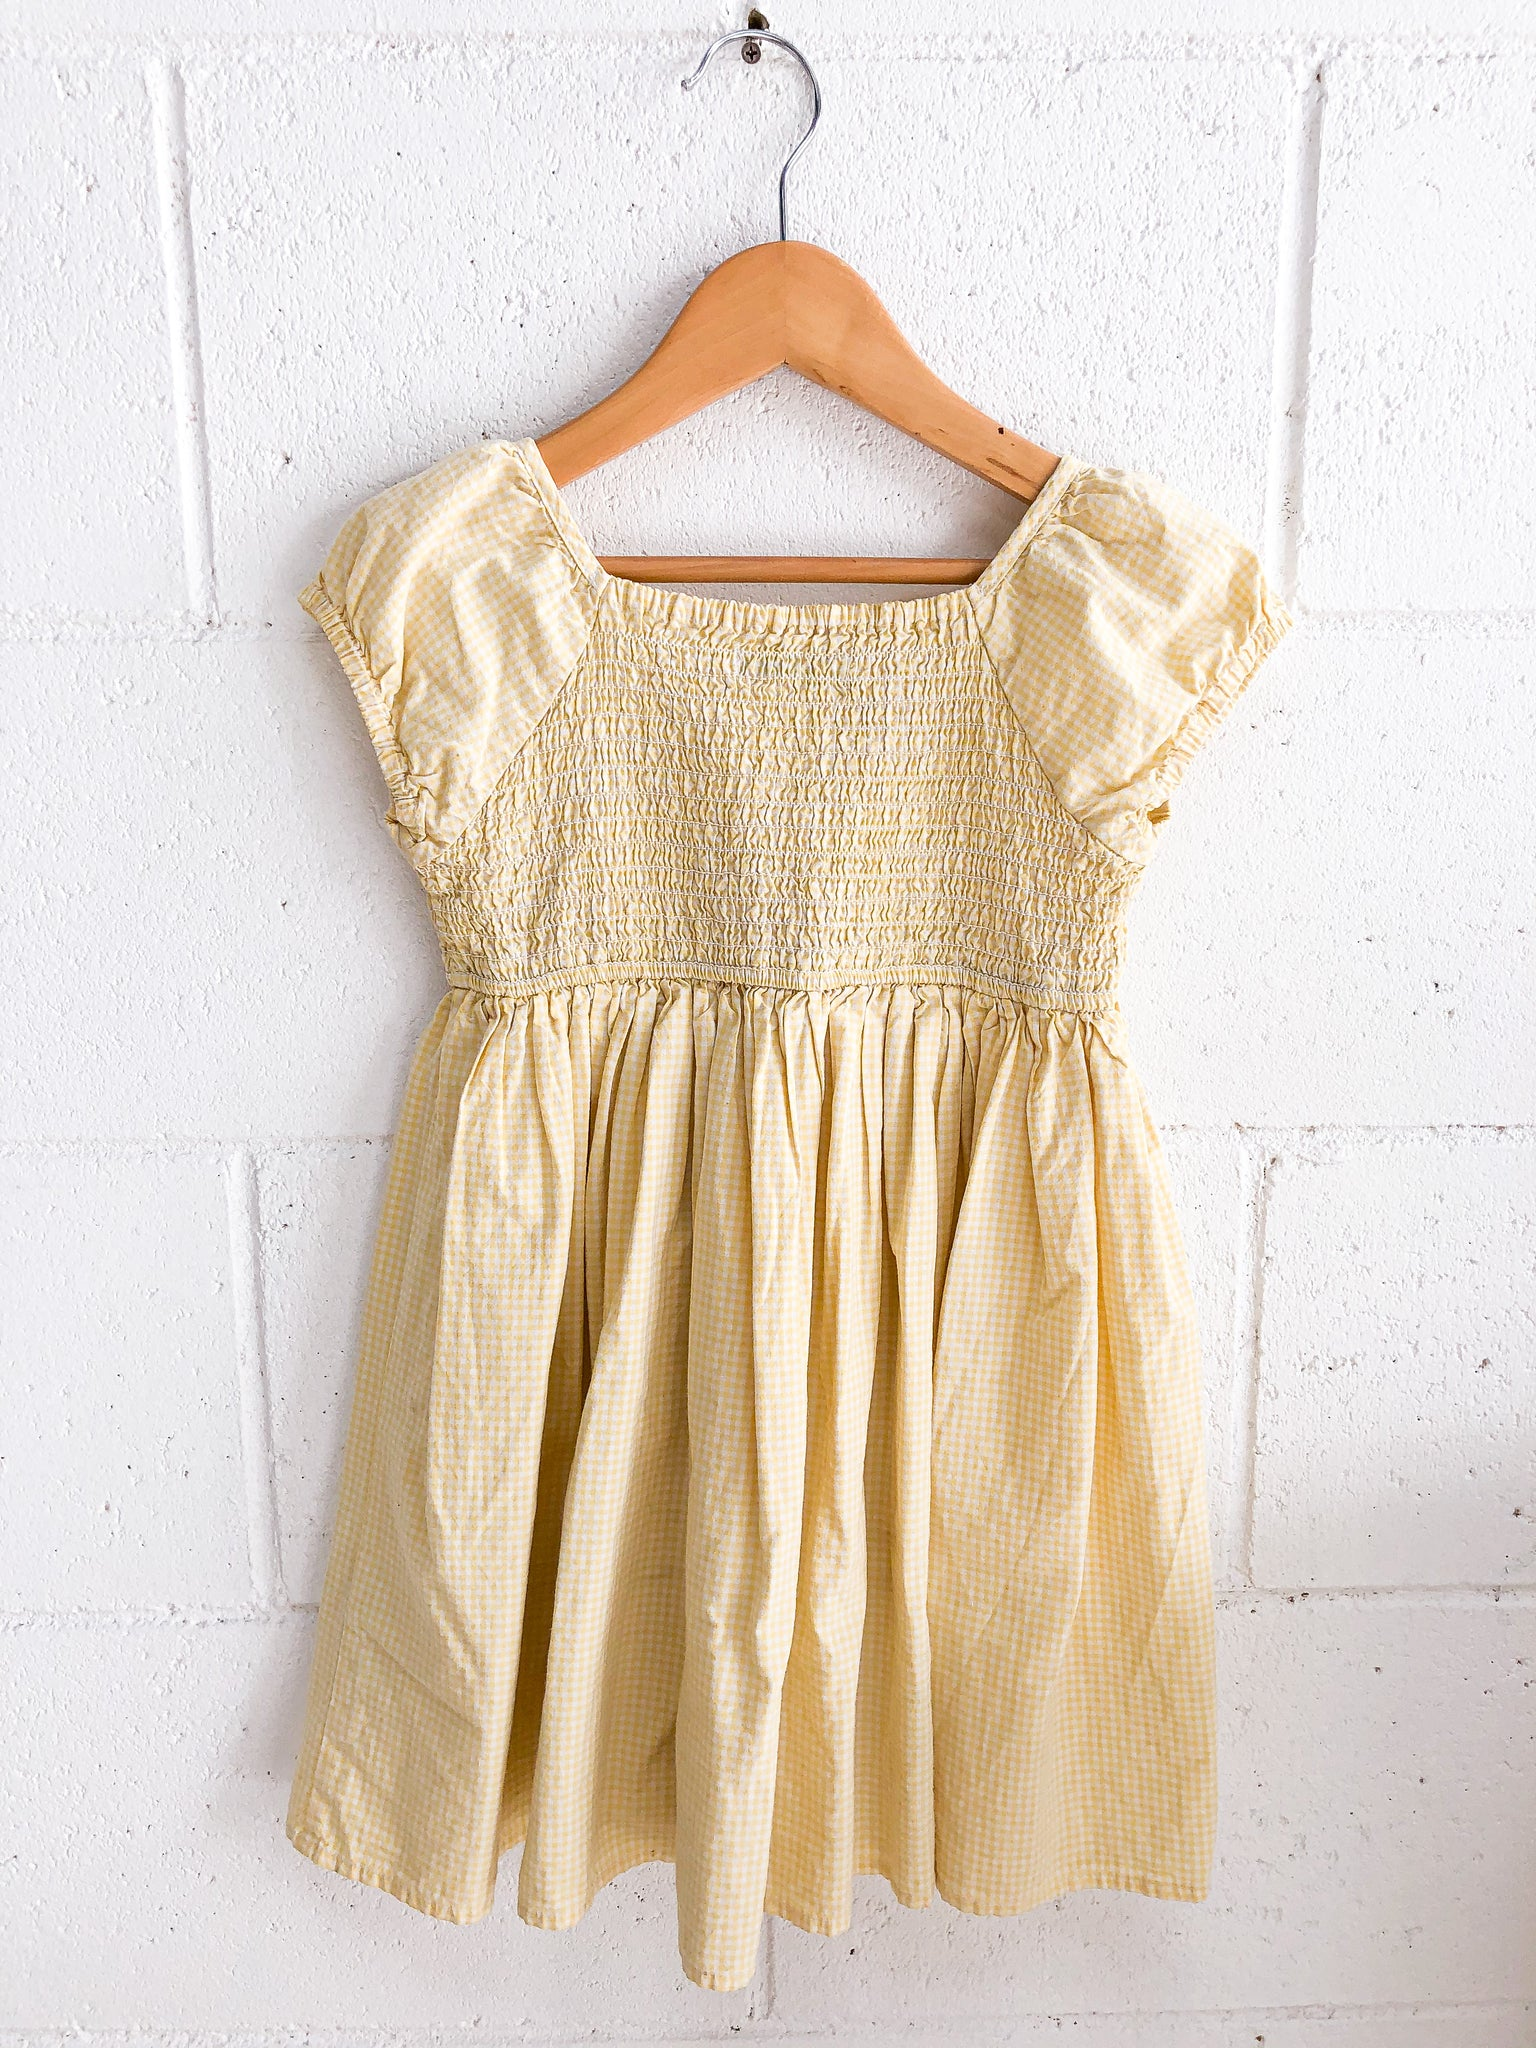 VINTAGE Yellow Gingham Cotton Dress 3-5Y